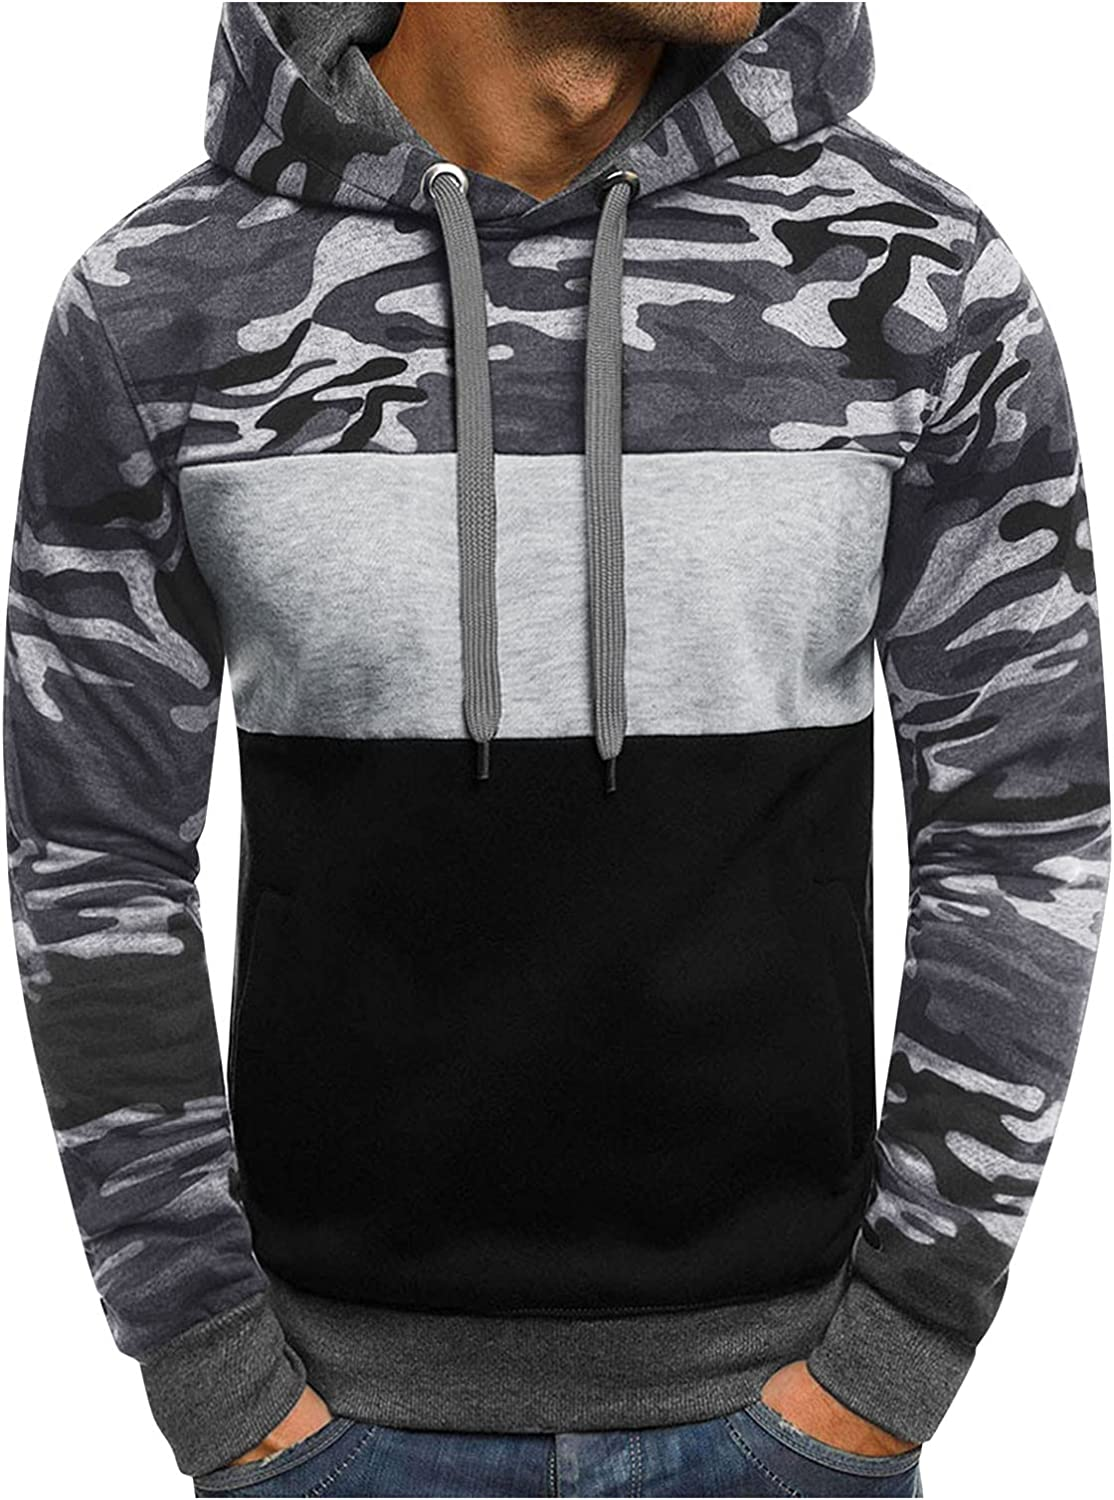 XXBR Camo Patchwork Hoodies for Mens, Camouflage Color Block Hooded Sweatshirts Fall Drawstring Slim Pullover with Hood